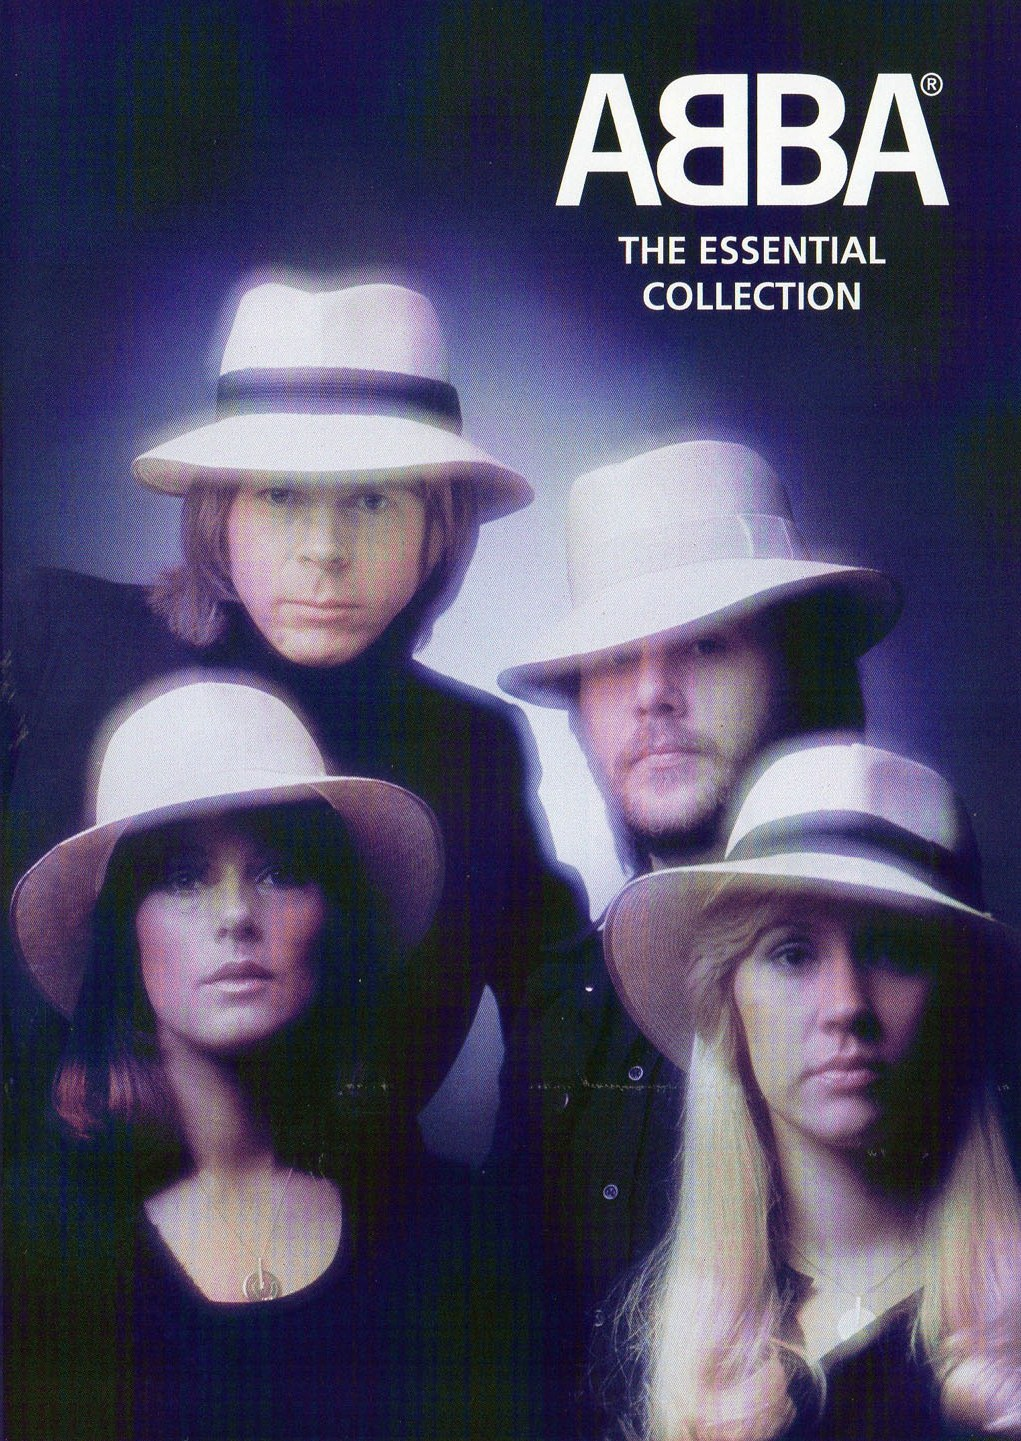 ABBA The Essential Collection